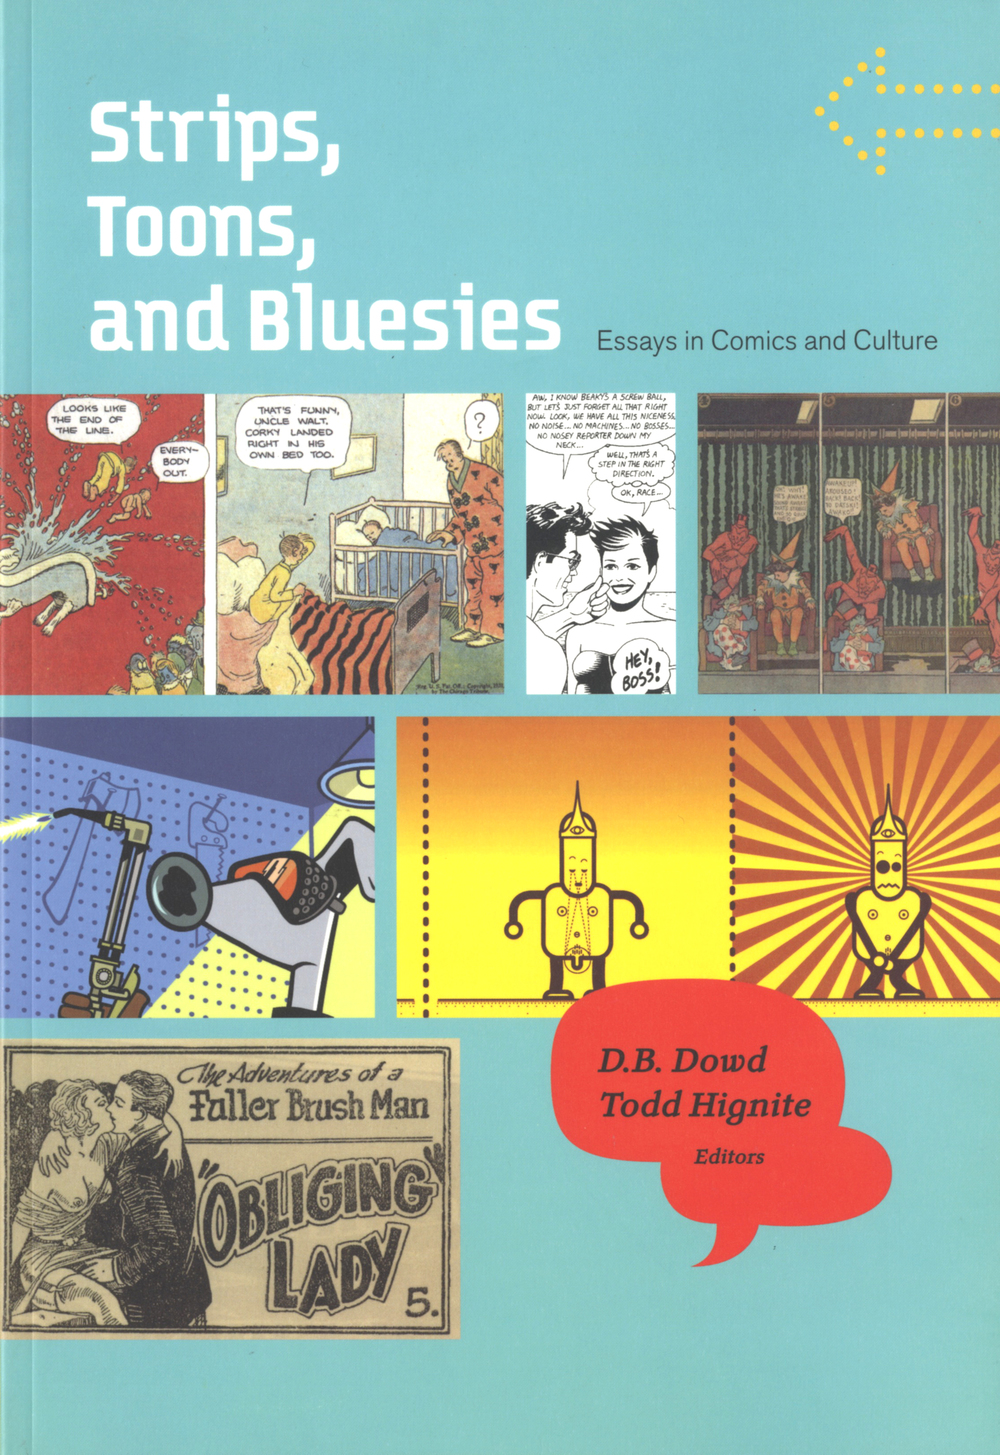 Heather Corcoran, cover design,  Strips, Toons and Bluesies: Essays in Comics and Culture , D.B. Dowd and Todd Hignite, editors, Princeton Architectural Press, 2006.